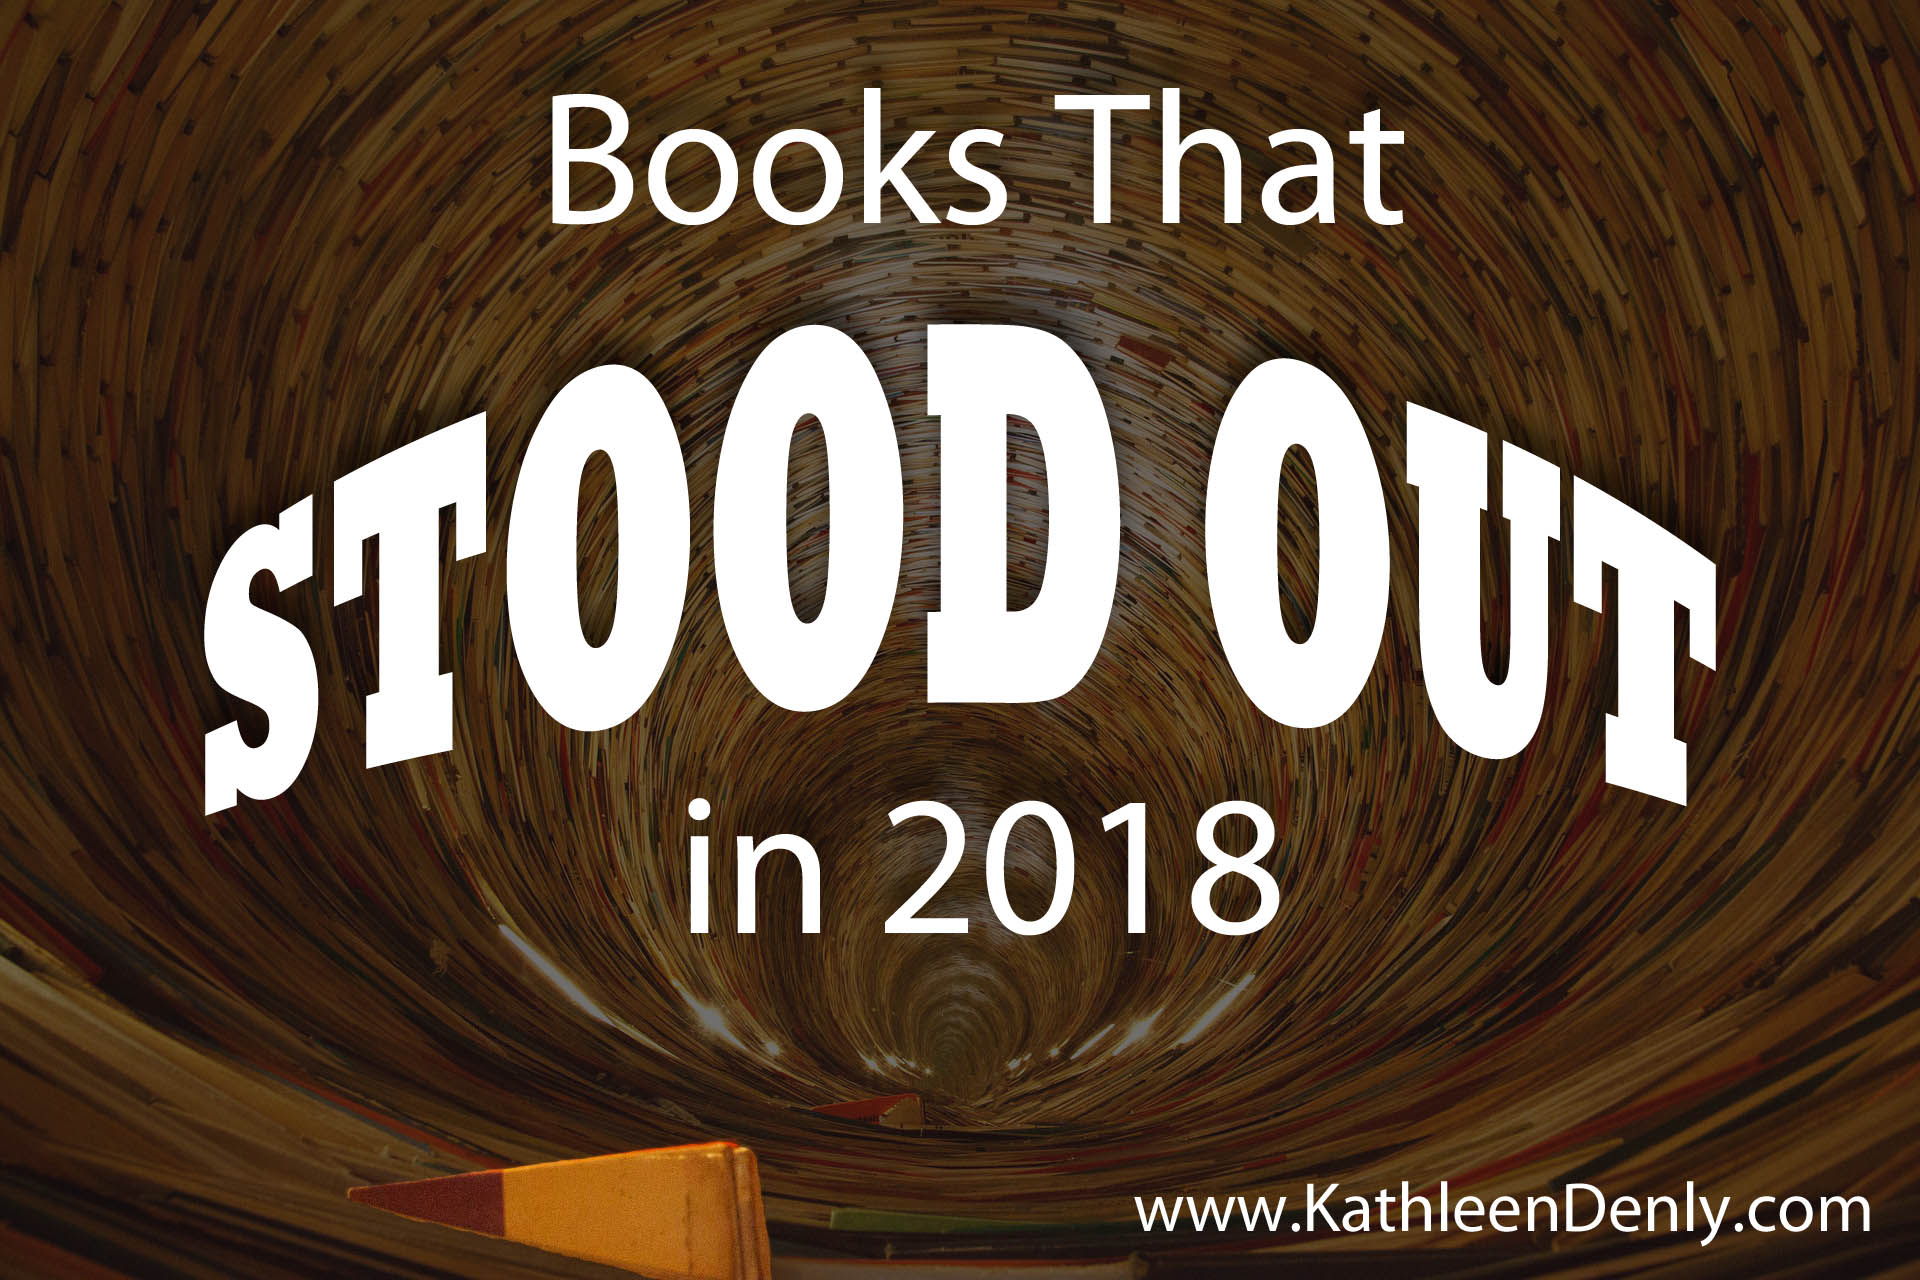 Books That Stood Out